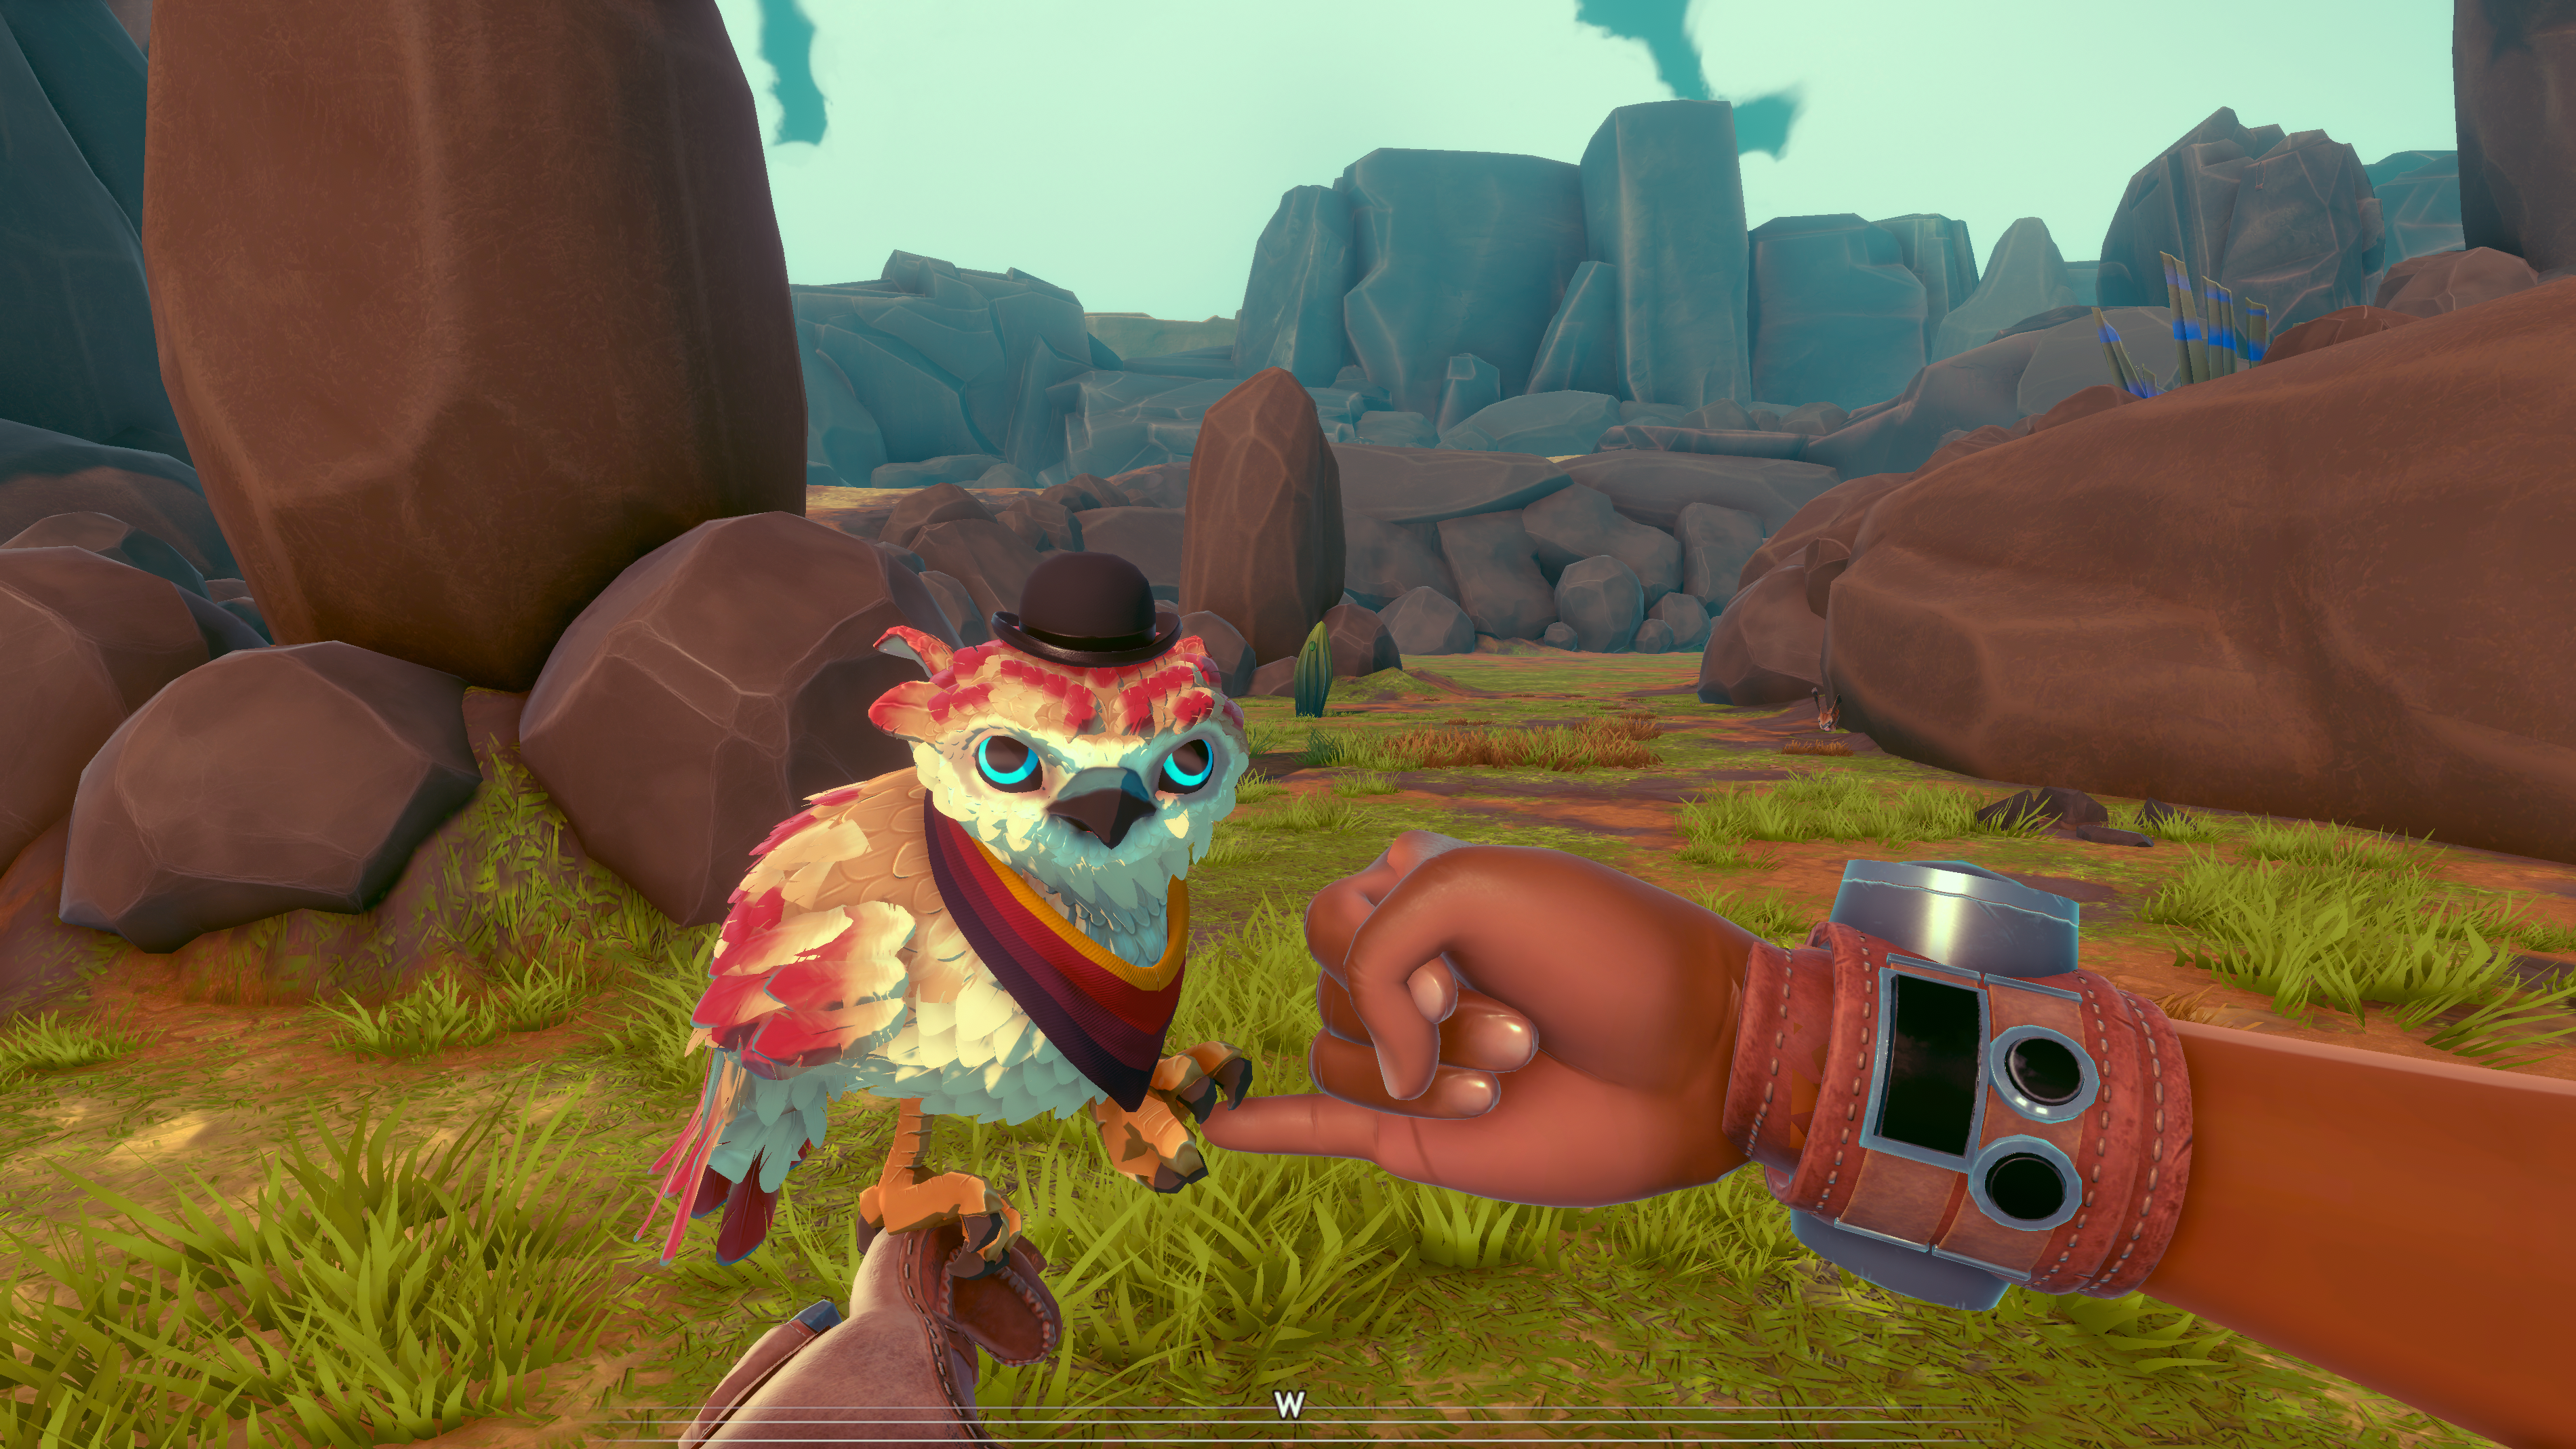 Falcon Age shows off everything that can be achieved with VR